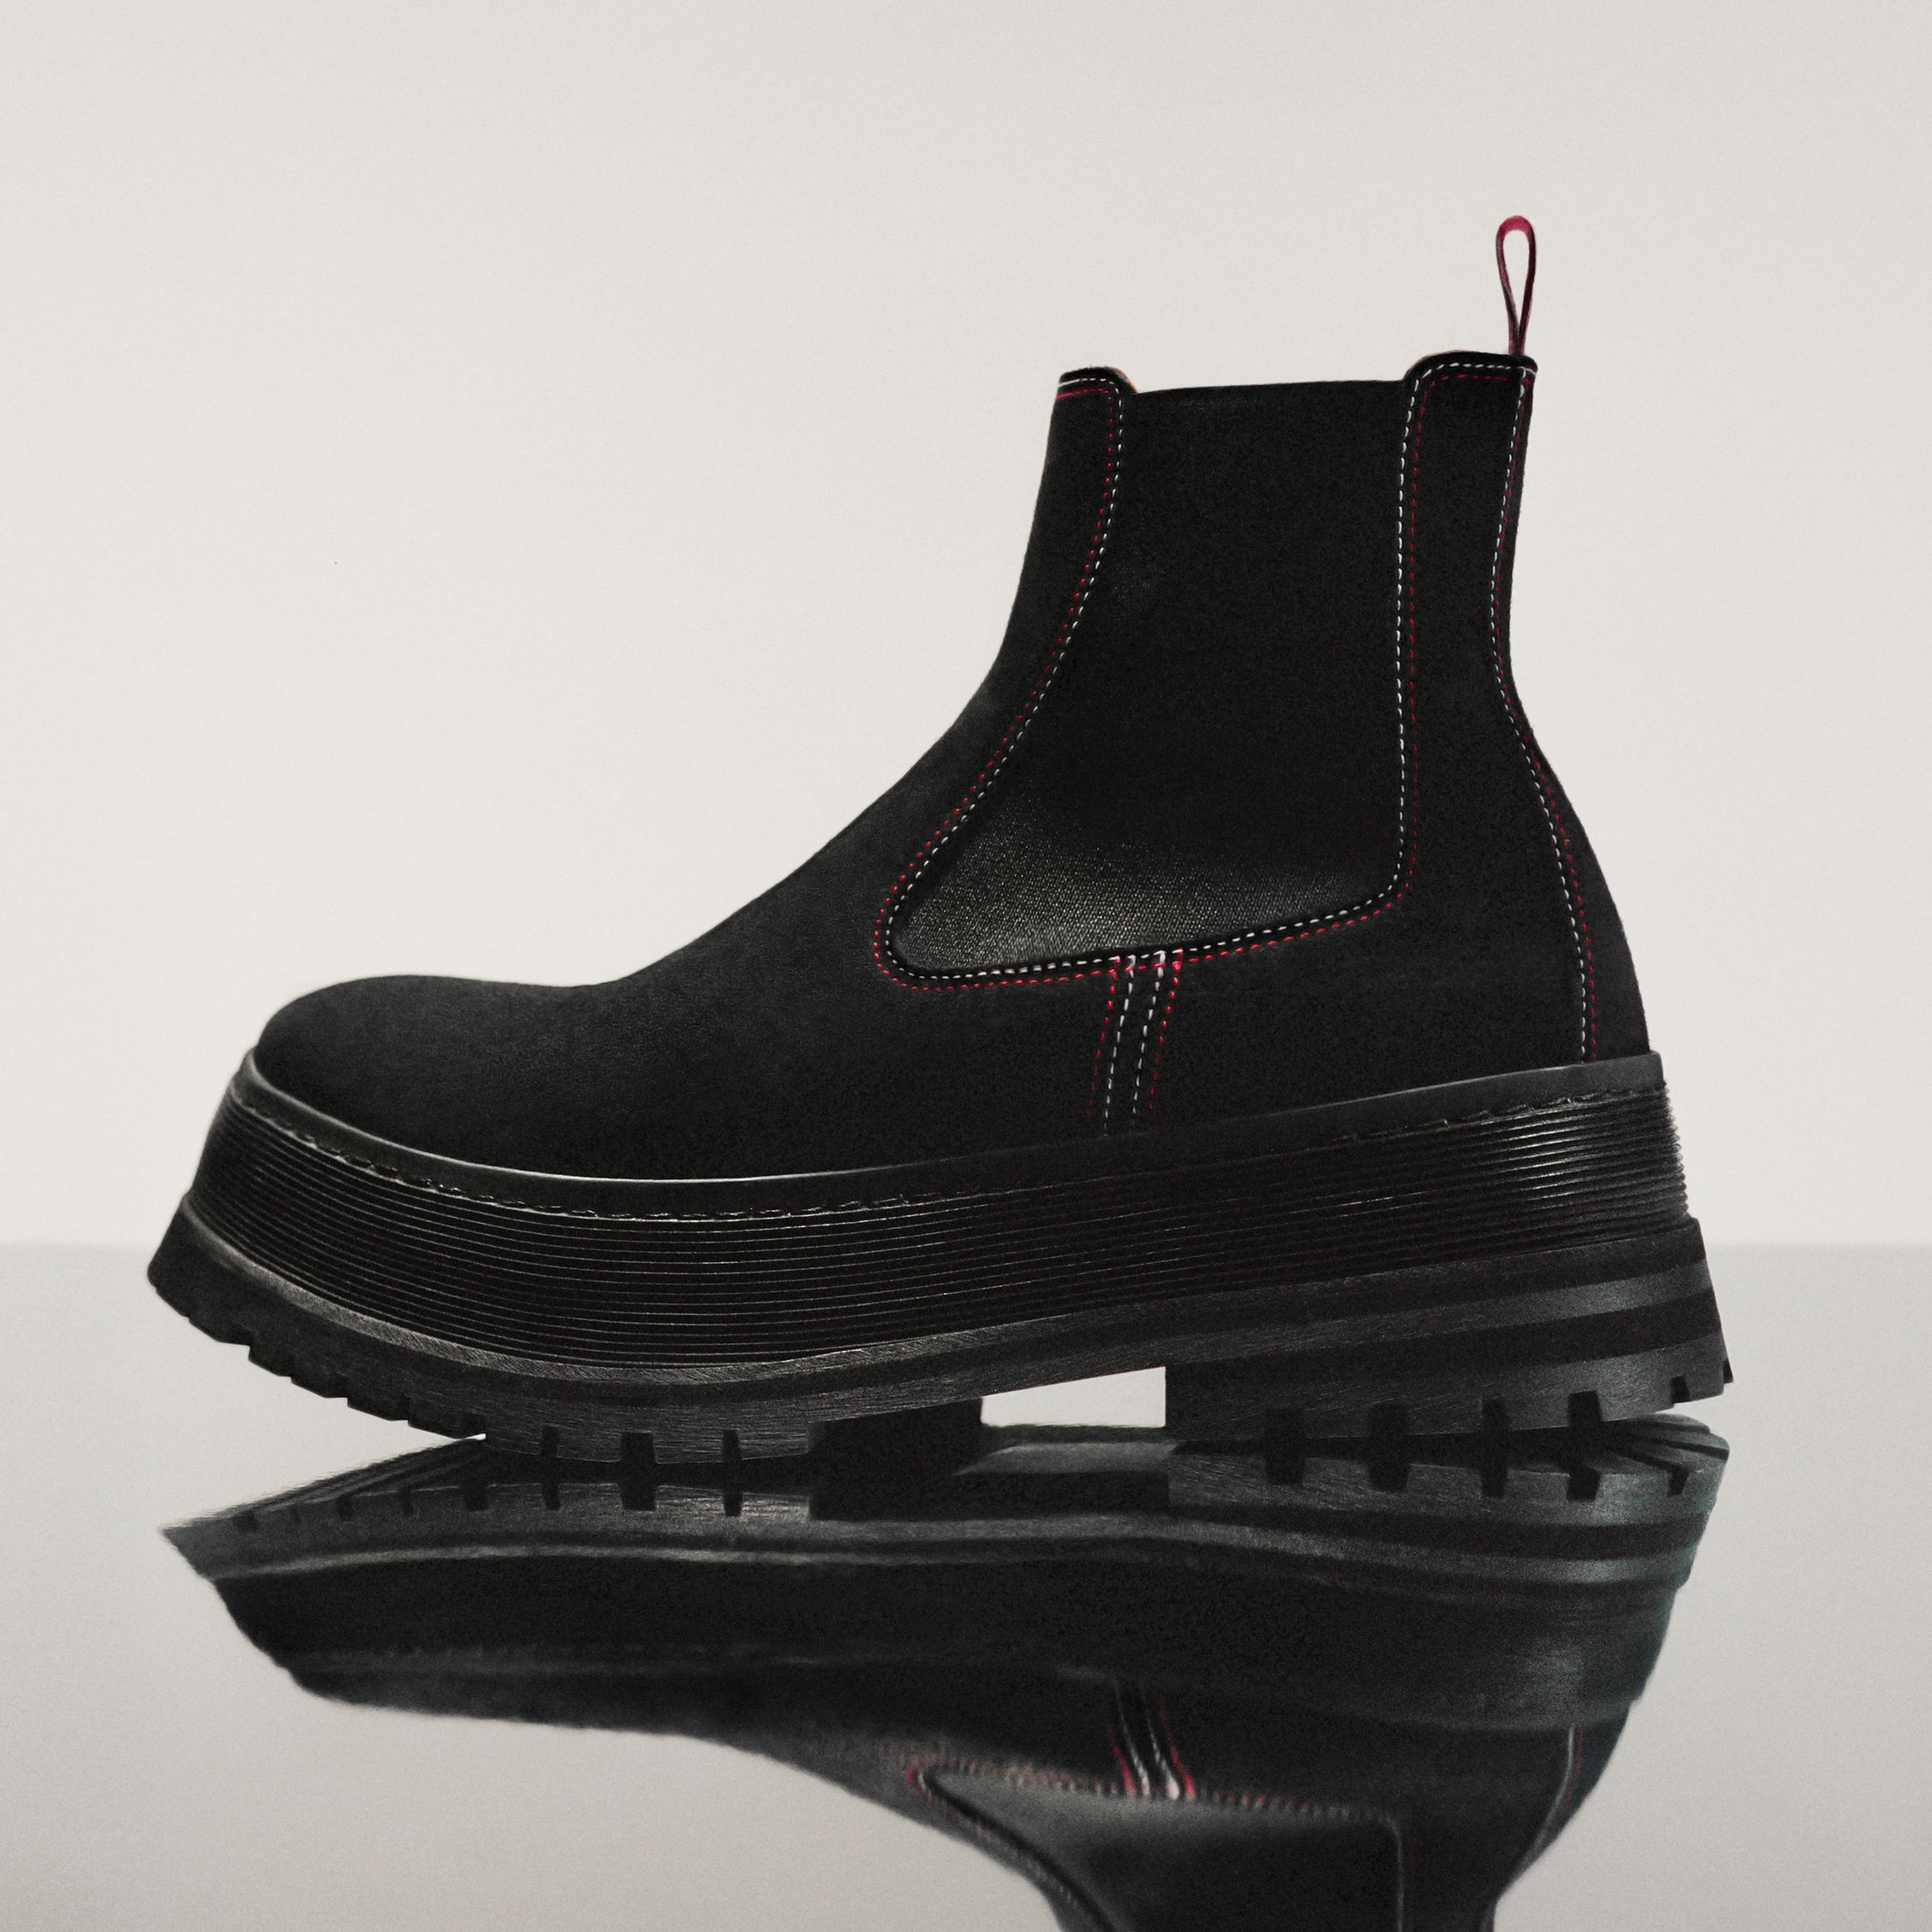 Topstitched Suede Chelsea Boots in Black/red/white - Men | Burberry Canada - 2